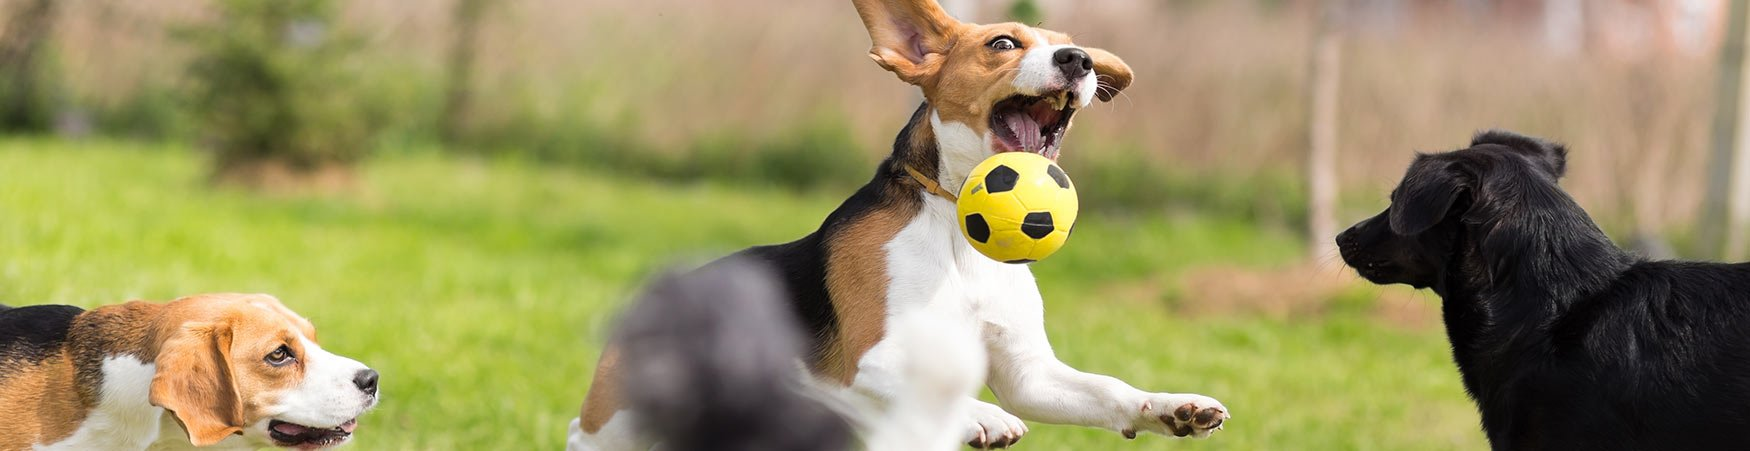 In-house dog and puppy training in Chadsford Pennsylvania